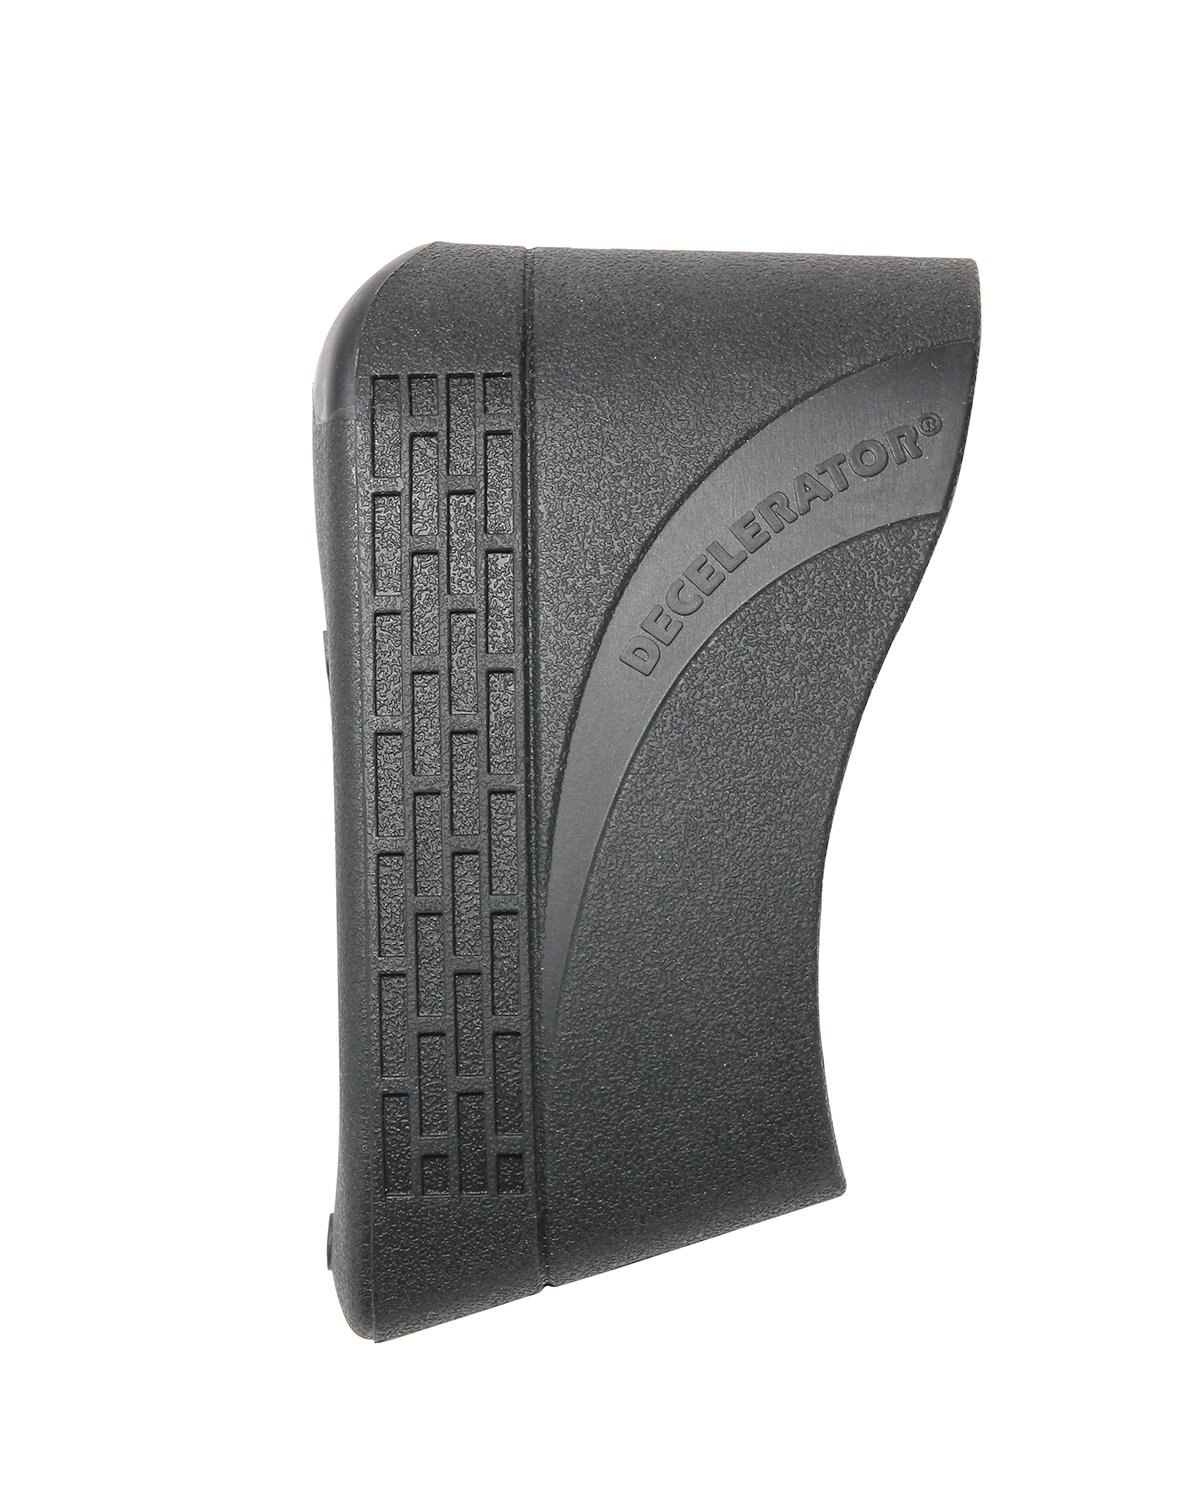 Pachmayr expérience) Slip on Recoil Pad noir Lyman Products Corp. 04413